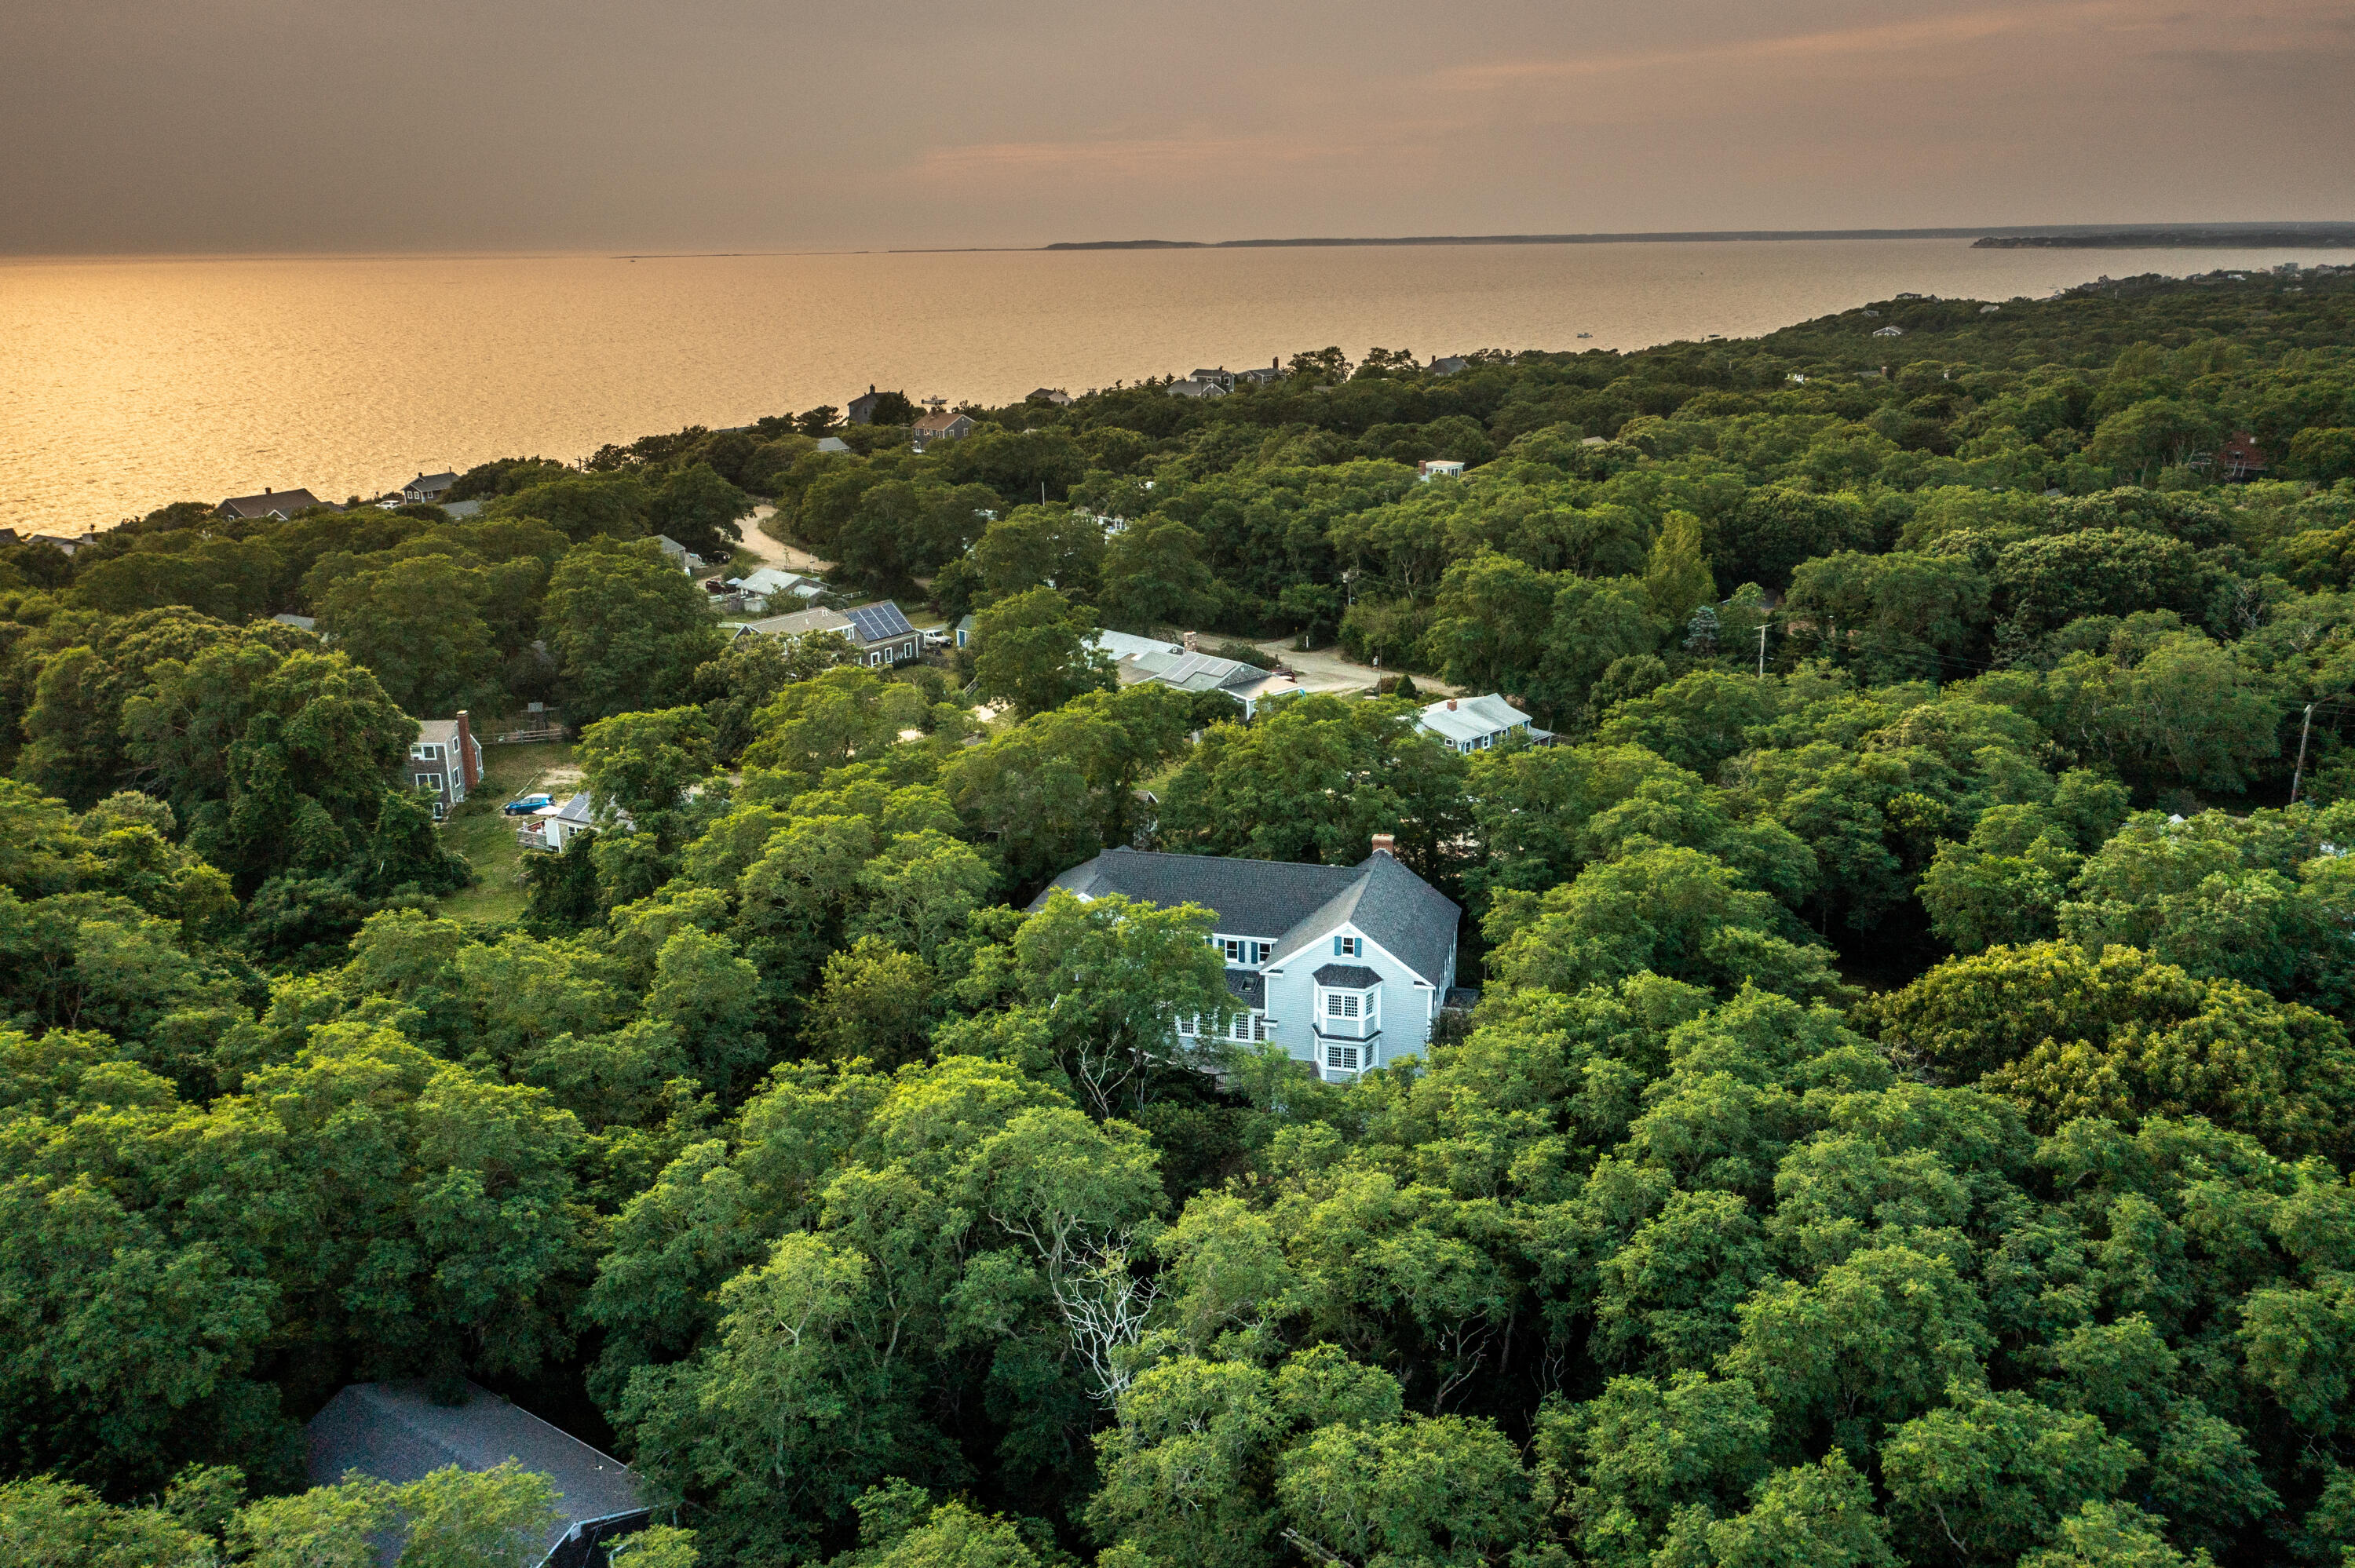 105 Townsend Rd. Extension, Eastham MA, 02642